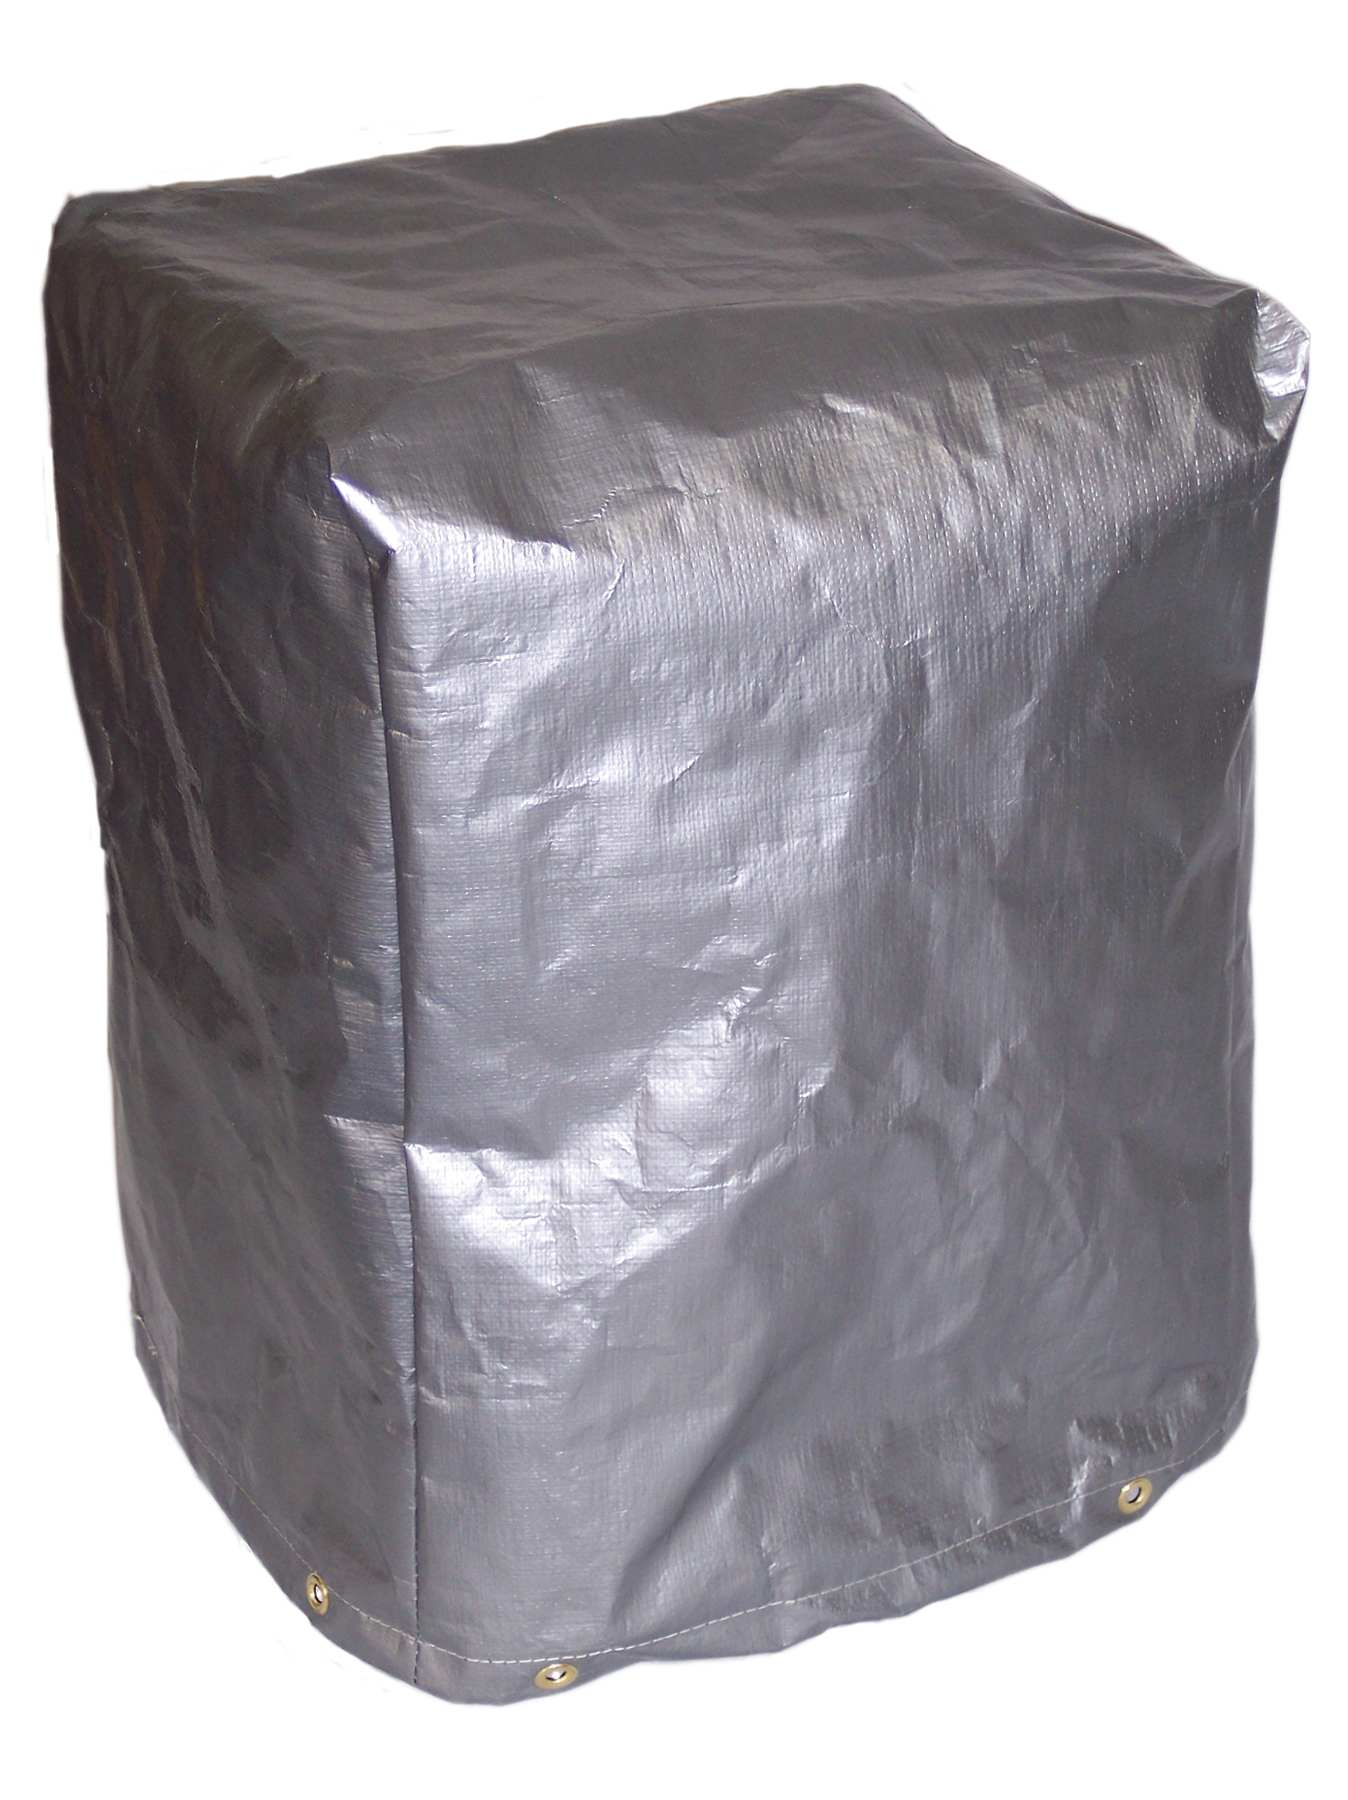 "POLYETHYLENE EQUIPMENT COVERS 24"" x 24"" x 36"""